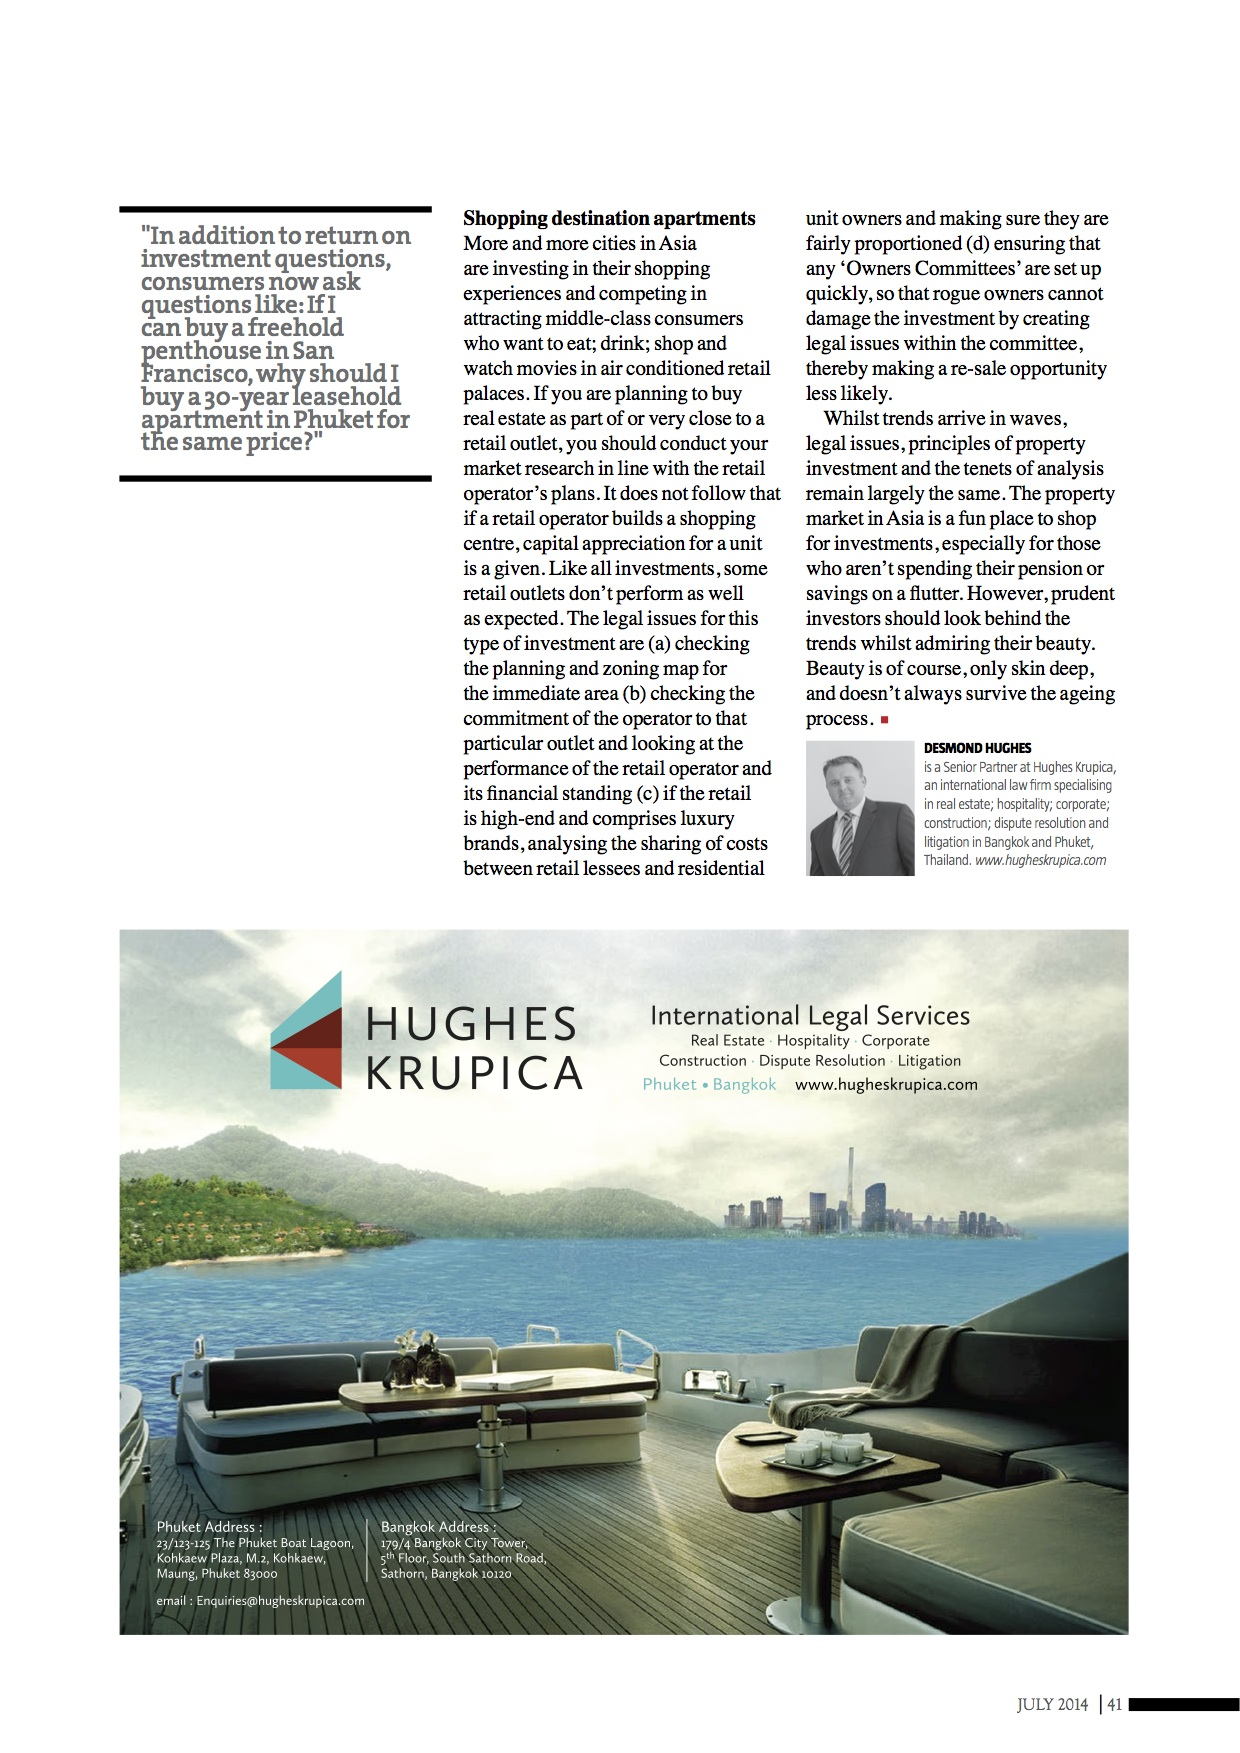 Property Trends in Asia Article  July 2014